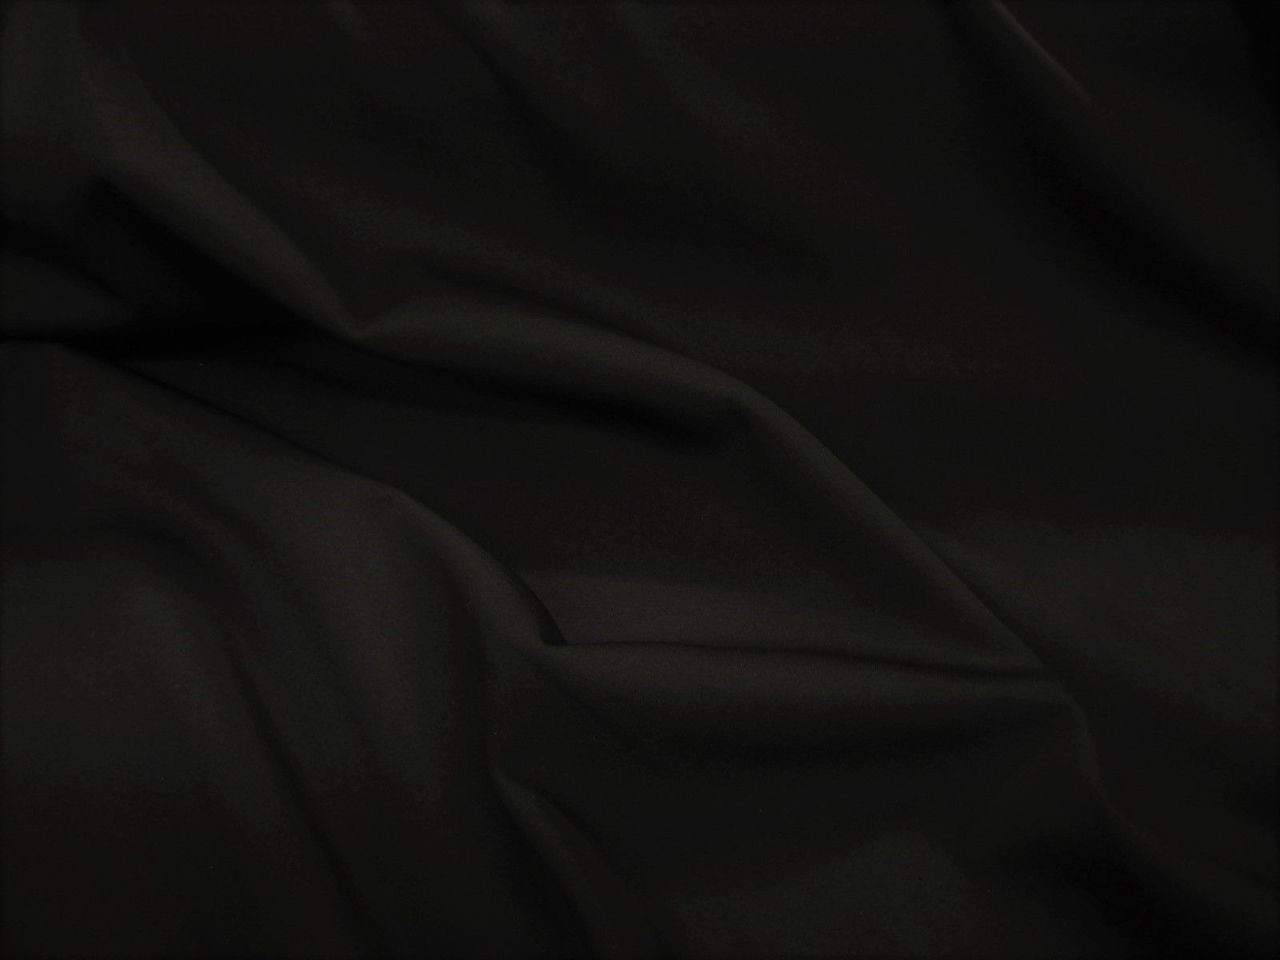 Discount Fabric Polyester Lycra Spandex 4 way Super Stretch Solid Black LY980